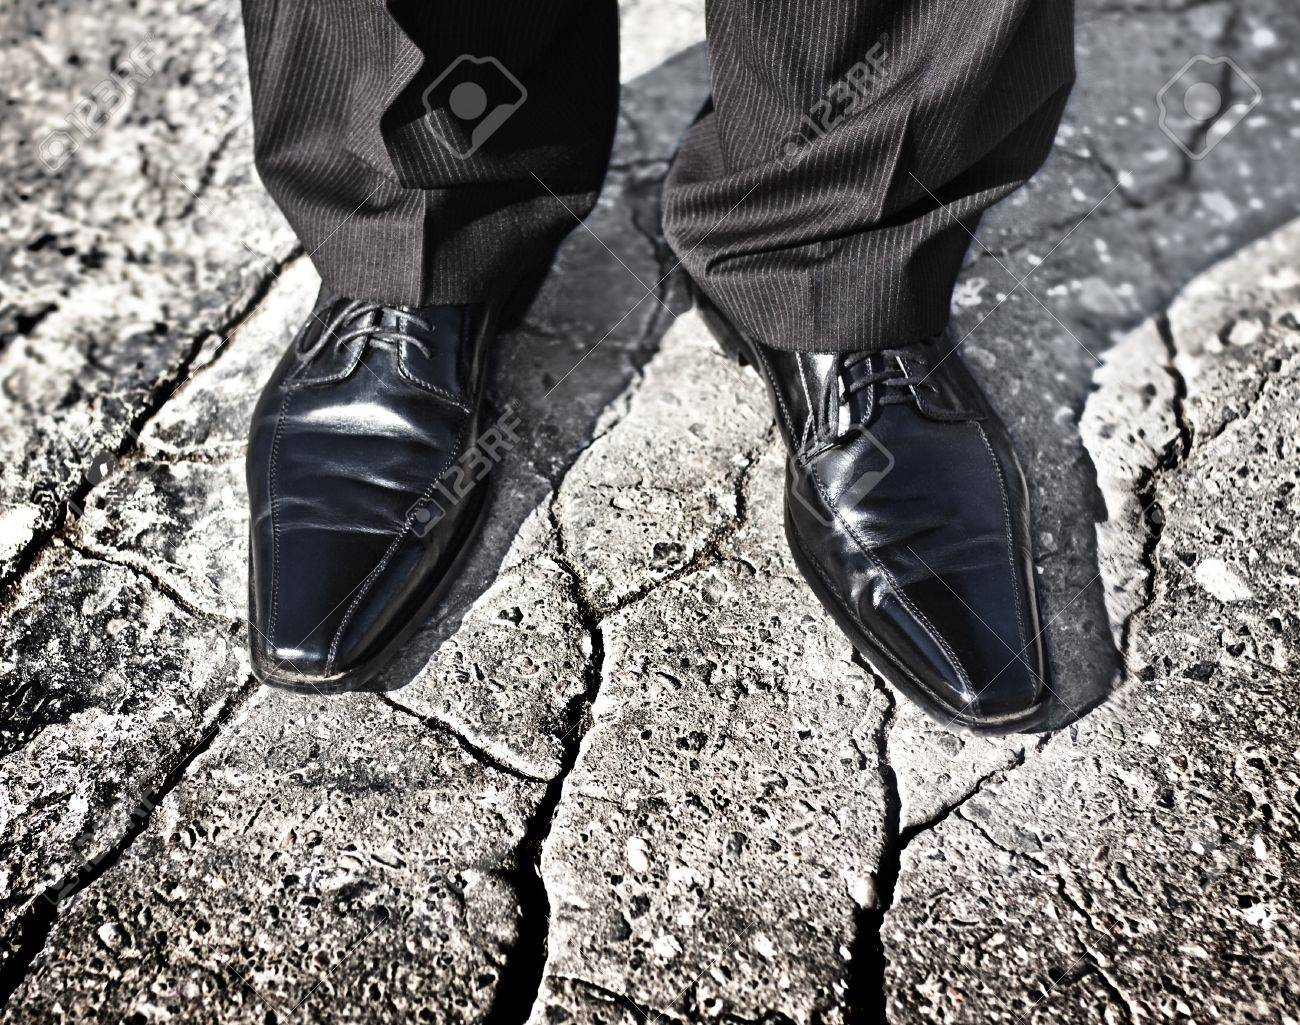 Businessman legs standing on a cracked ground - uncertain future, insecure situation or risky investment decision concept Stock Photo - 18660766